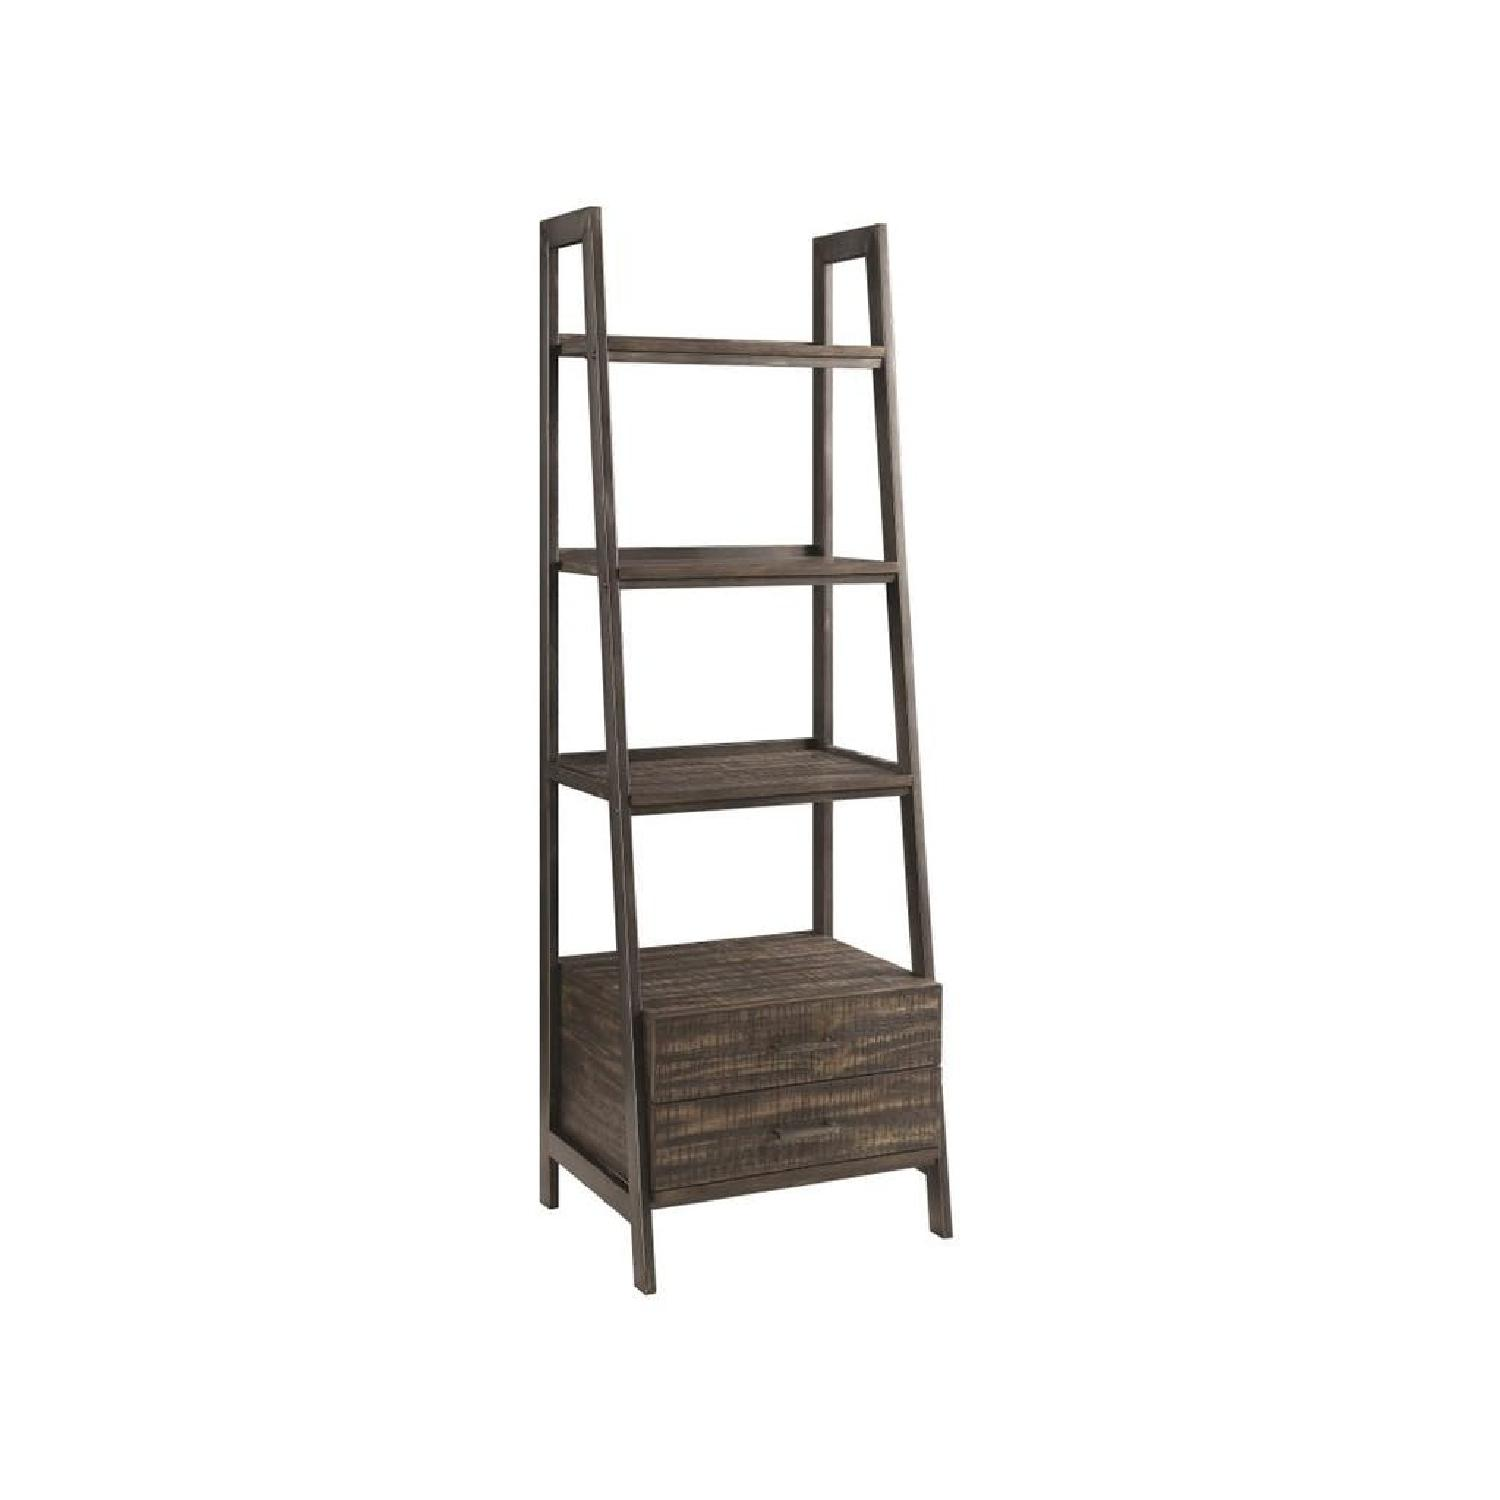 Rustic Bookcase w/ Metal Frame & Wood Shelves & Two Drawers